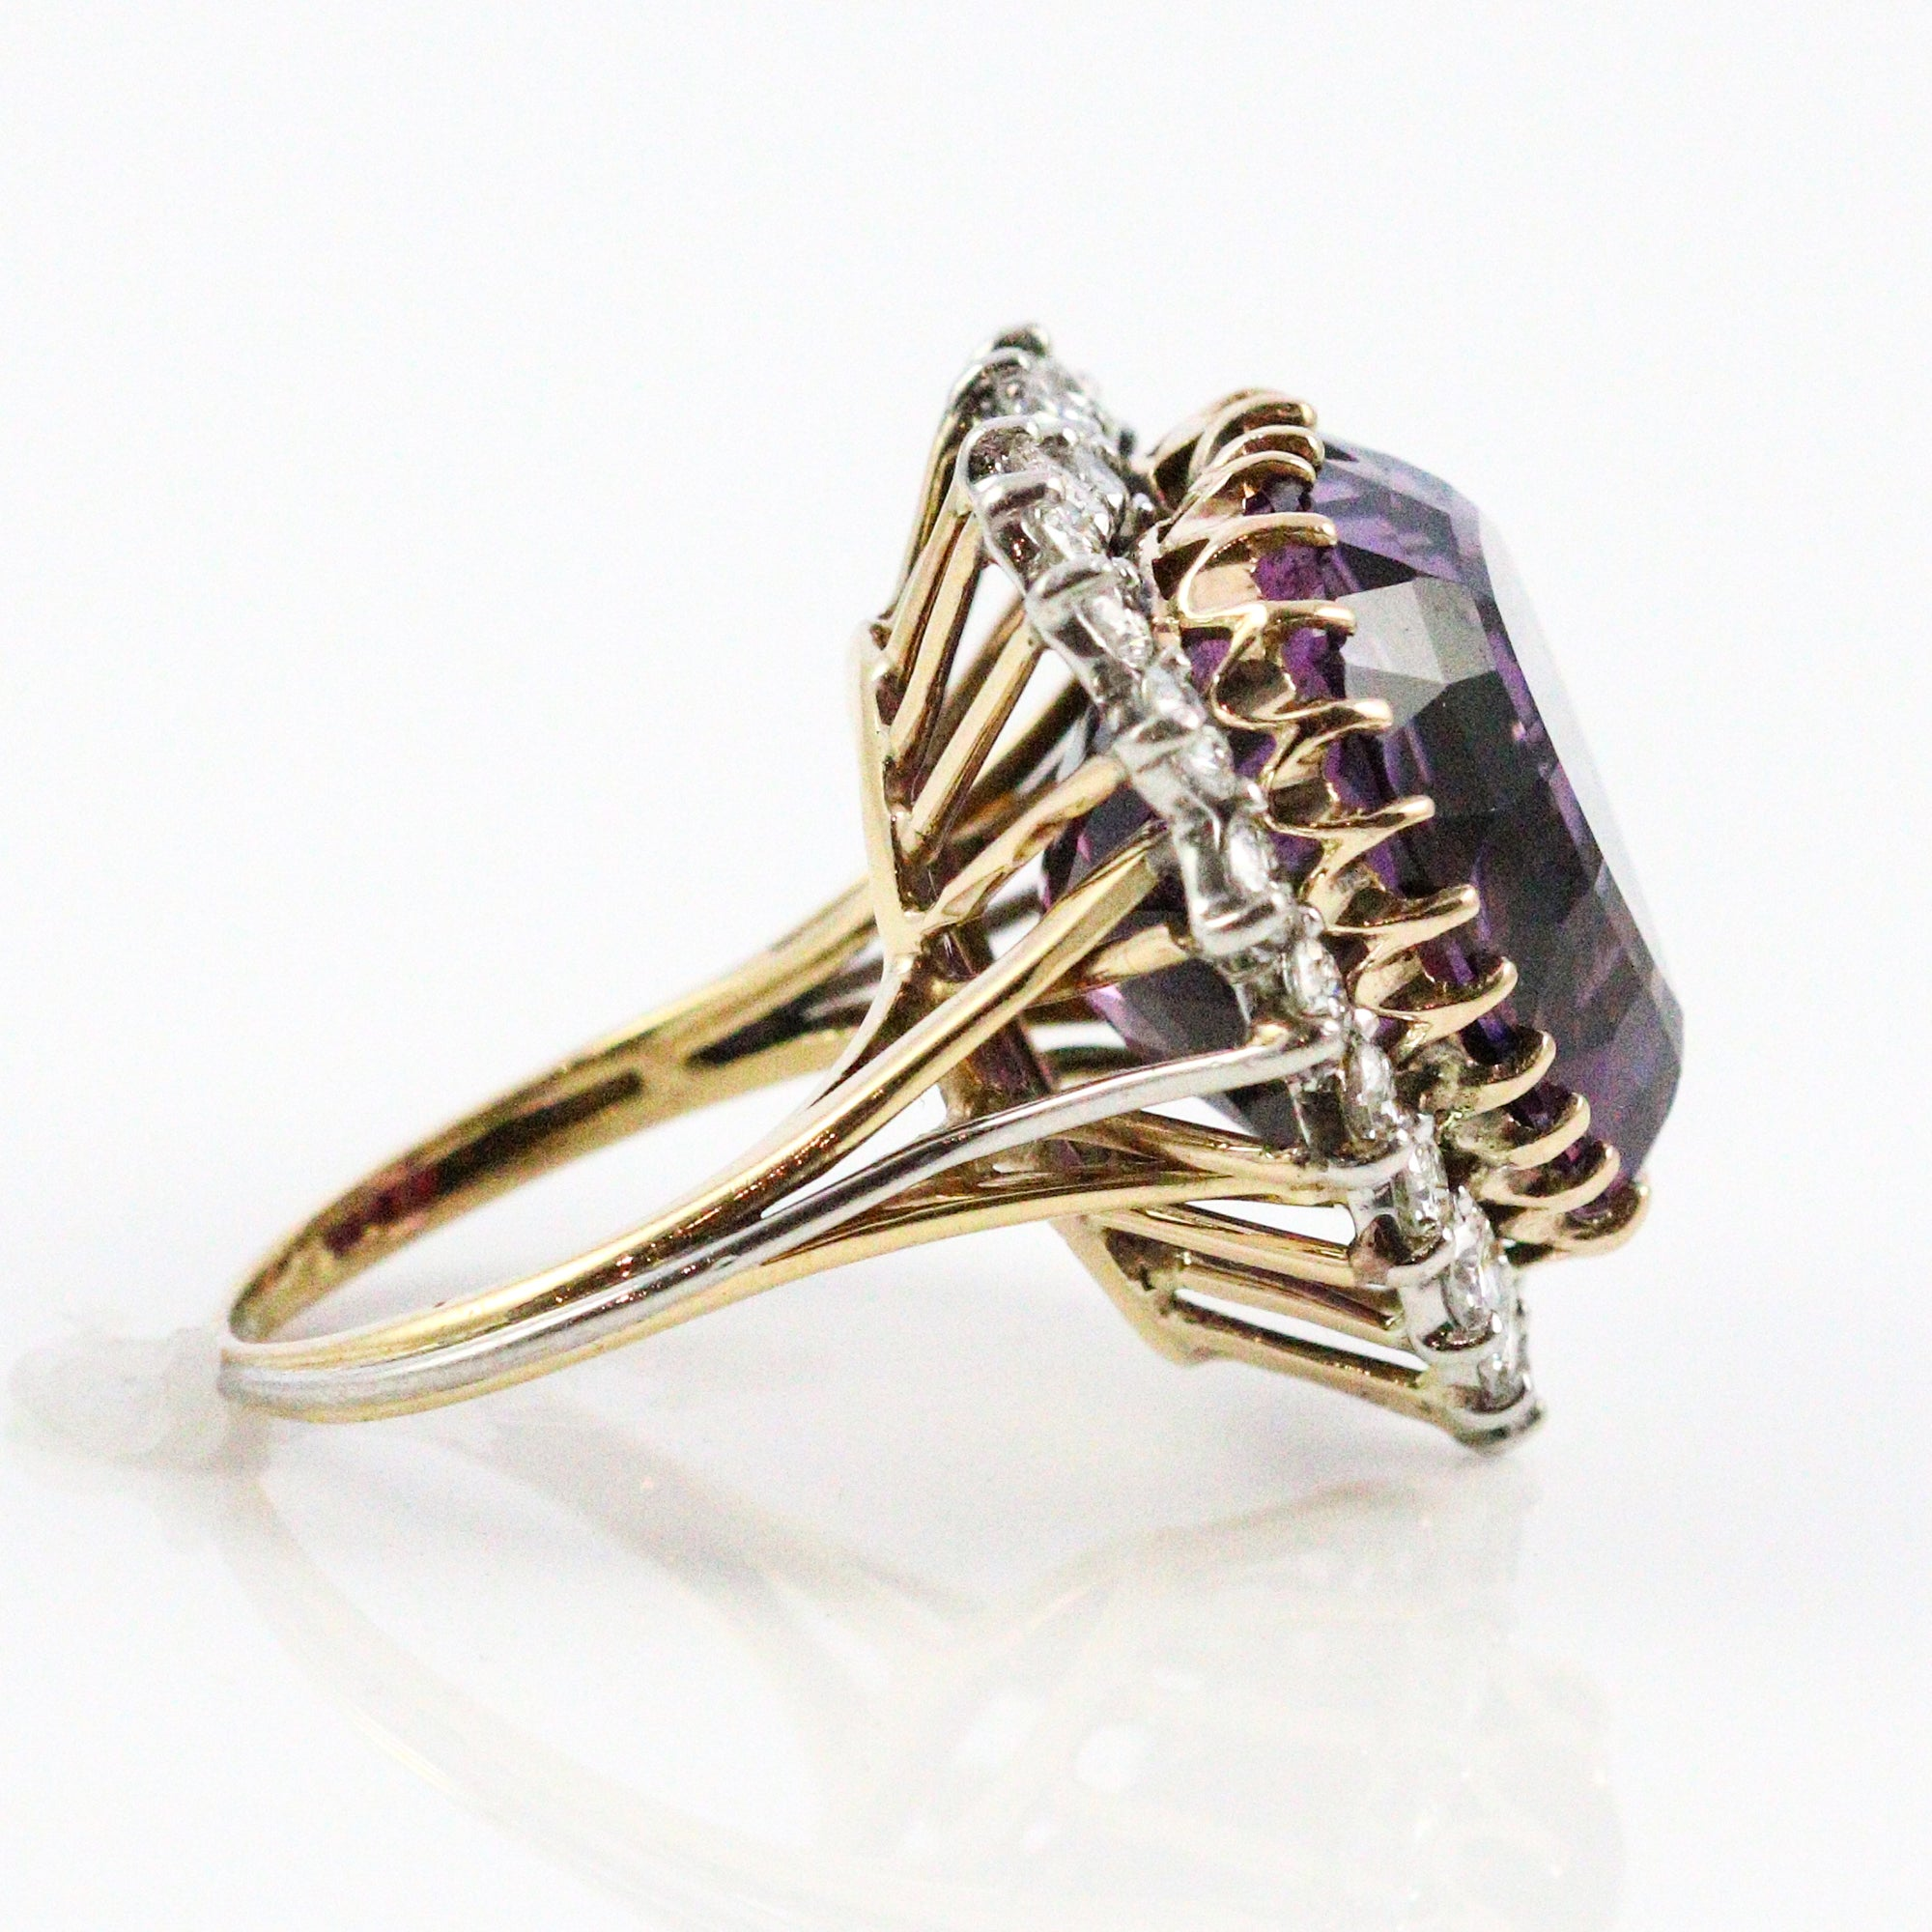 loinnir ring gold amethyst the engagement silver jewellery online rings amethist products shrubbery irish plated contemporary collection